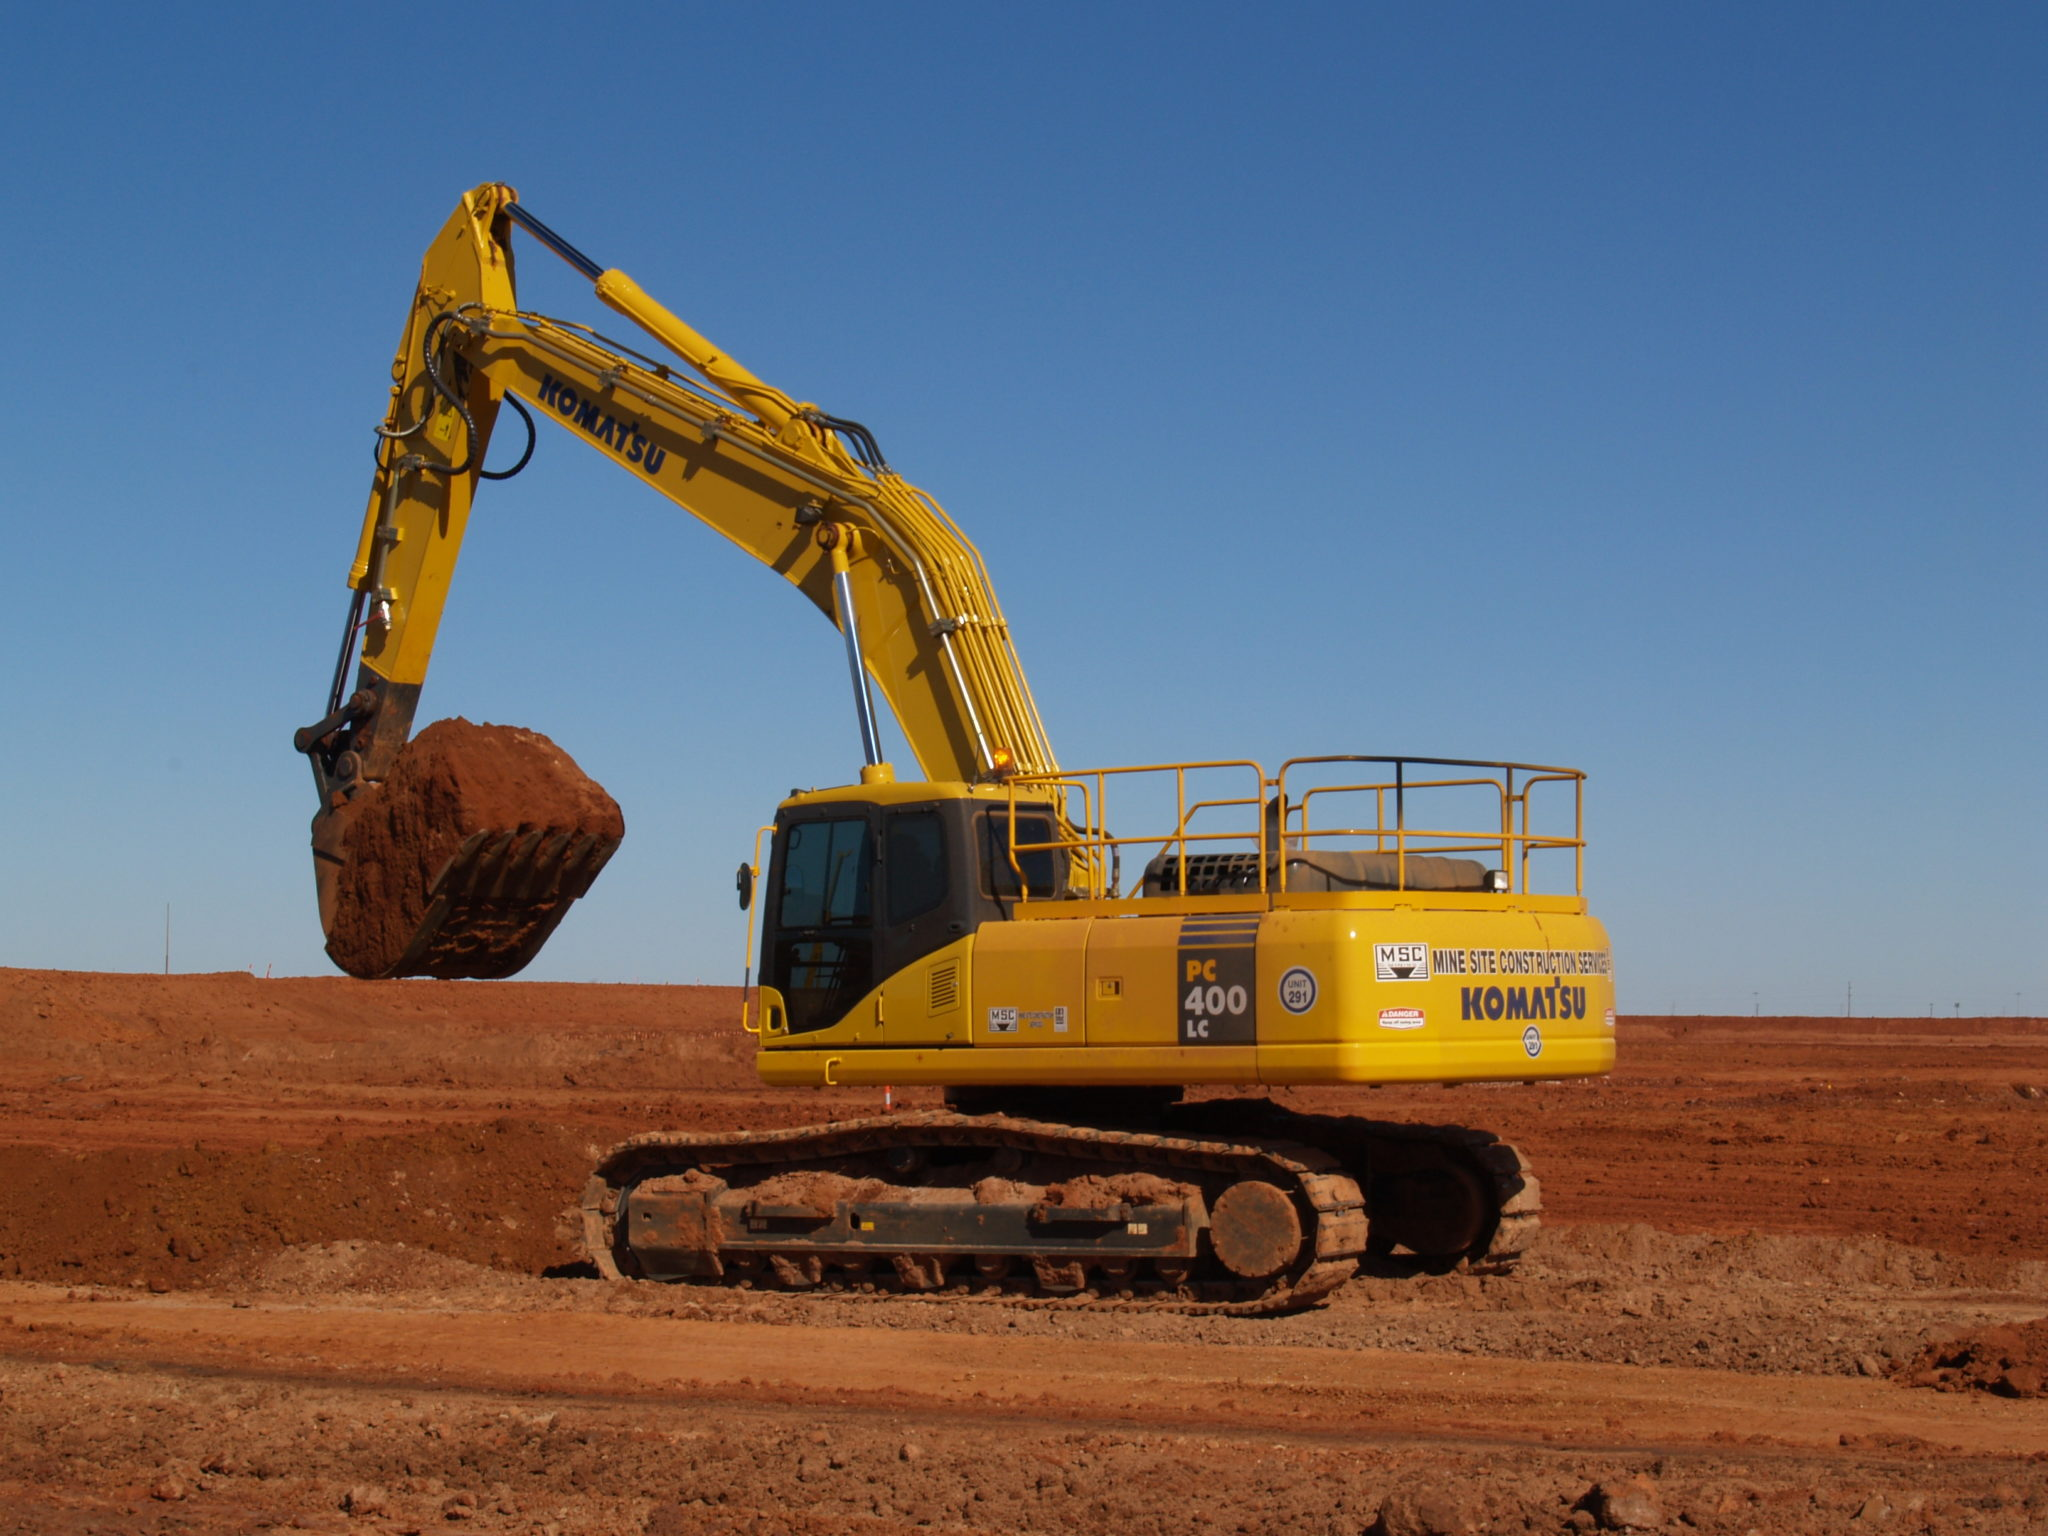 Port Hedland Excavator Caterpillar Mine Site Construction Services